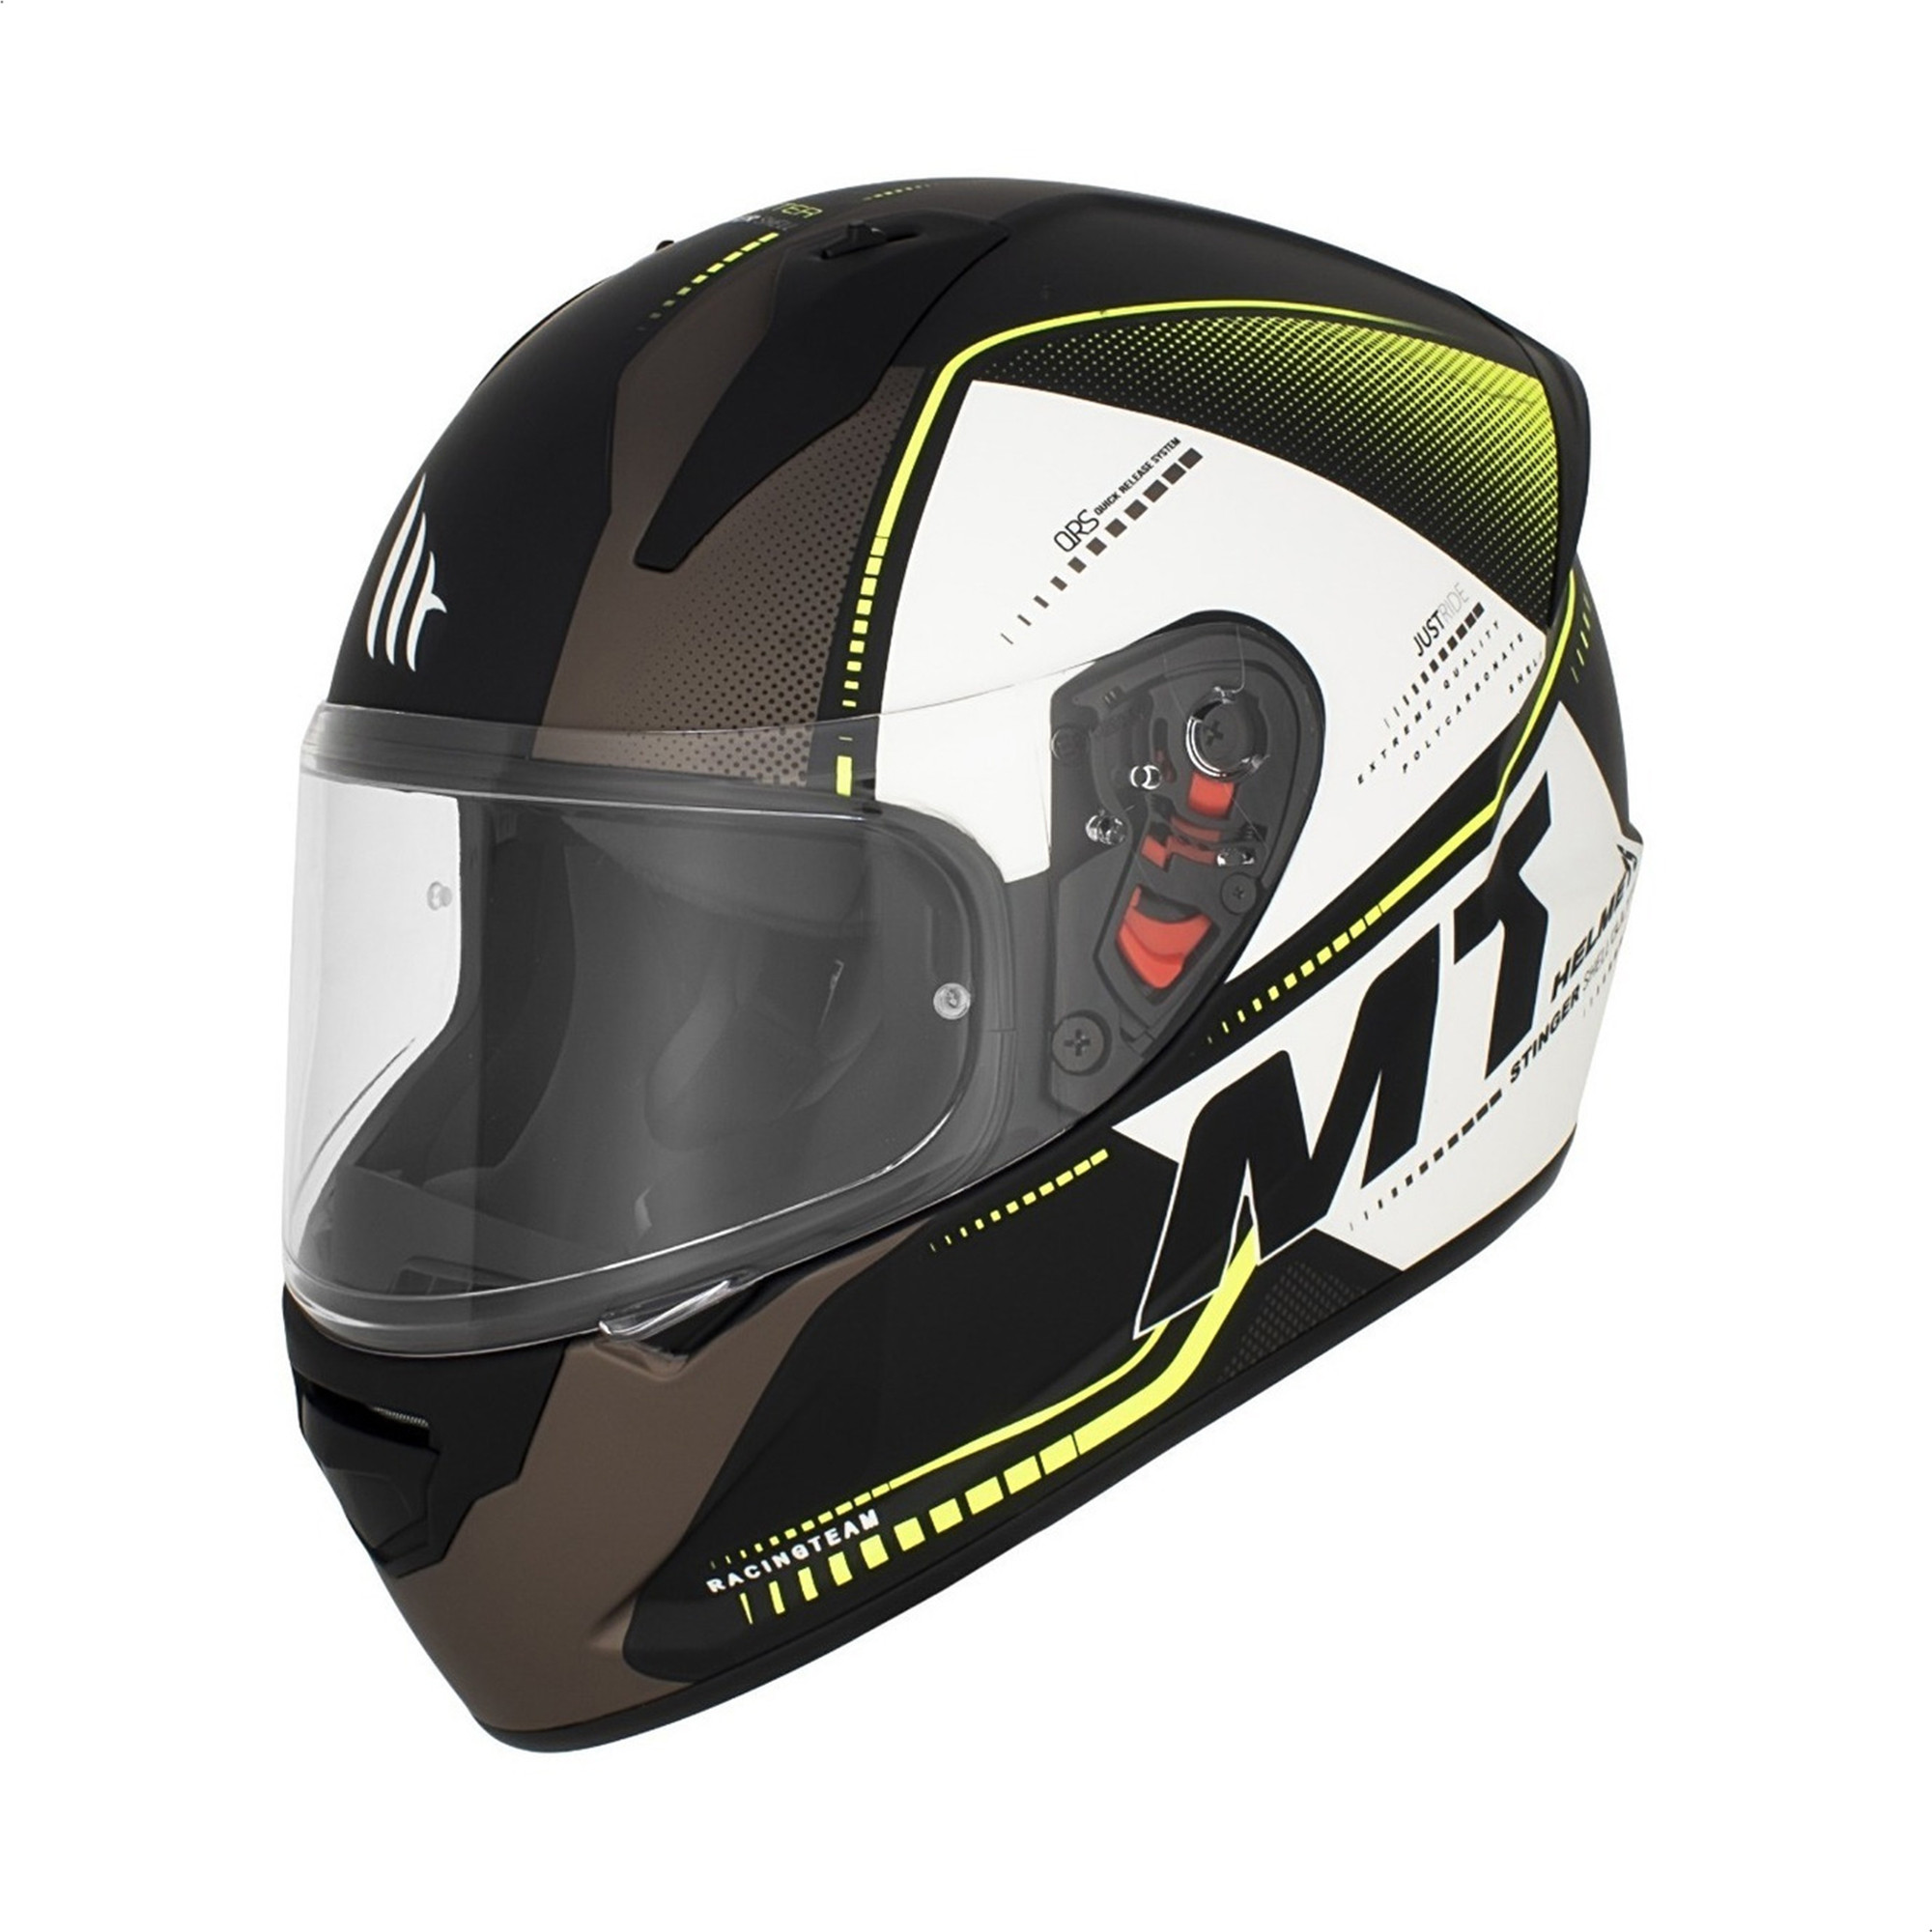 Casco Integral Mt Stinger Gultter C3 Amarillo Mate